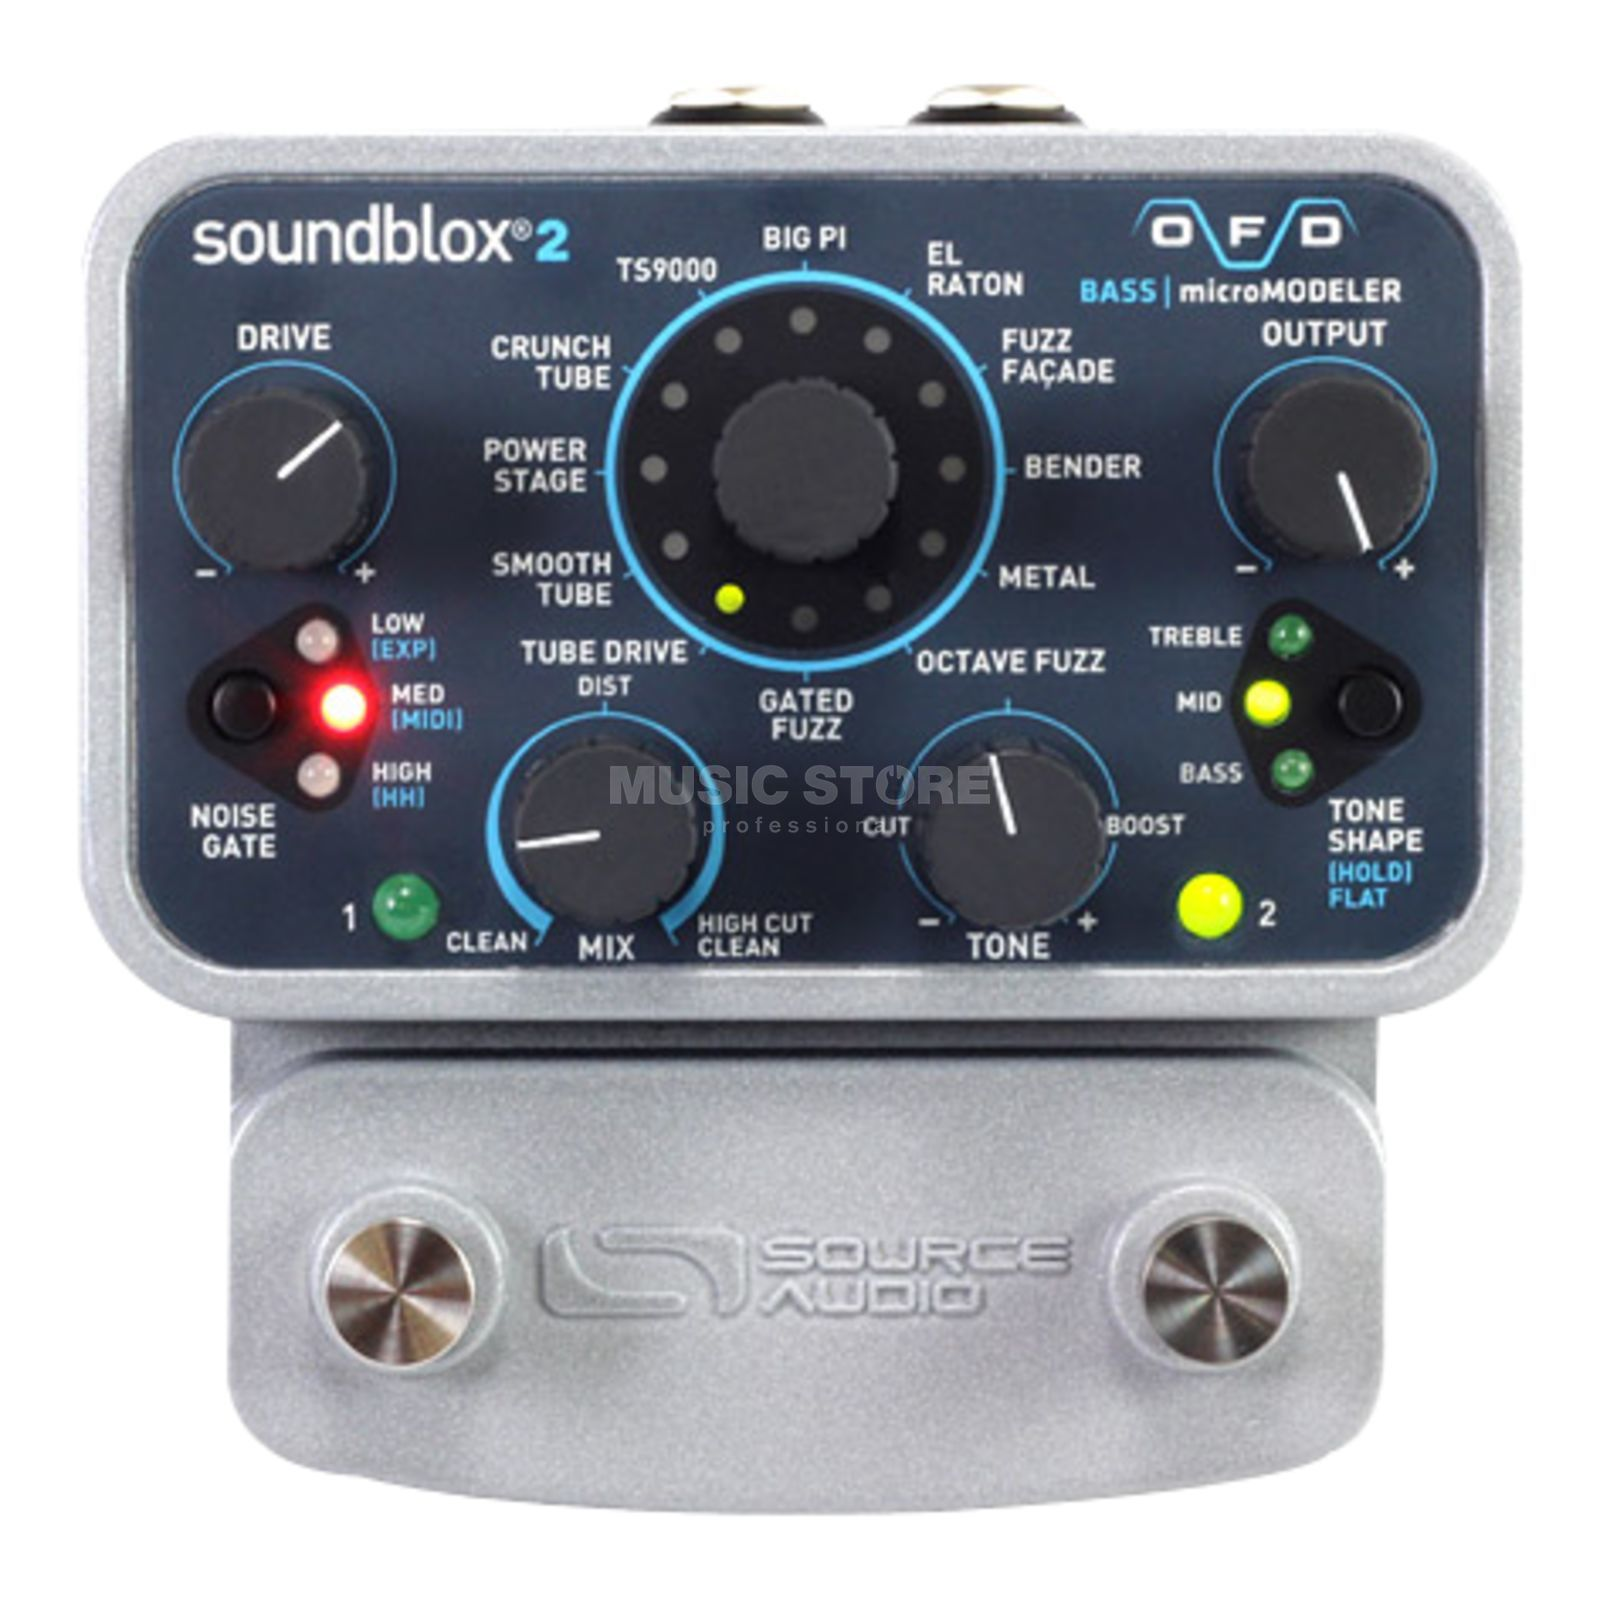 Source Audio Soundblox 2 OFD microModeler  Product Image